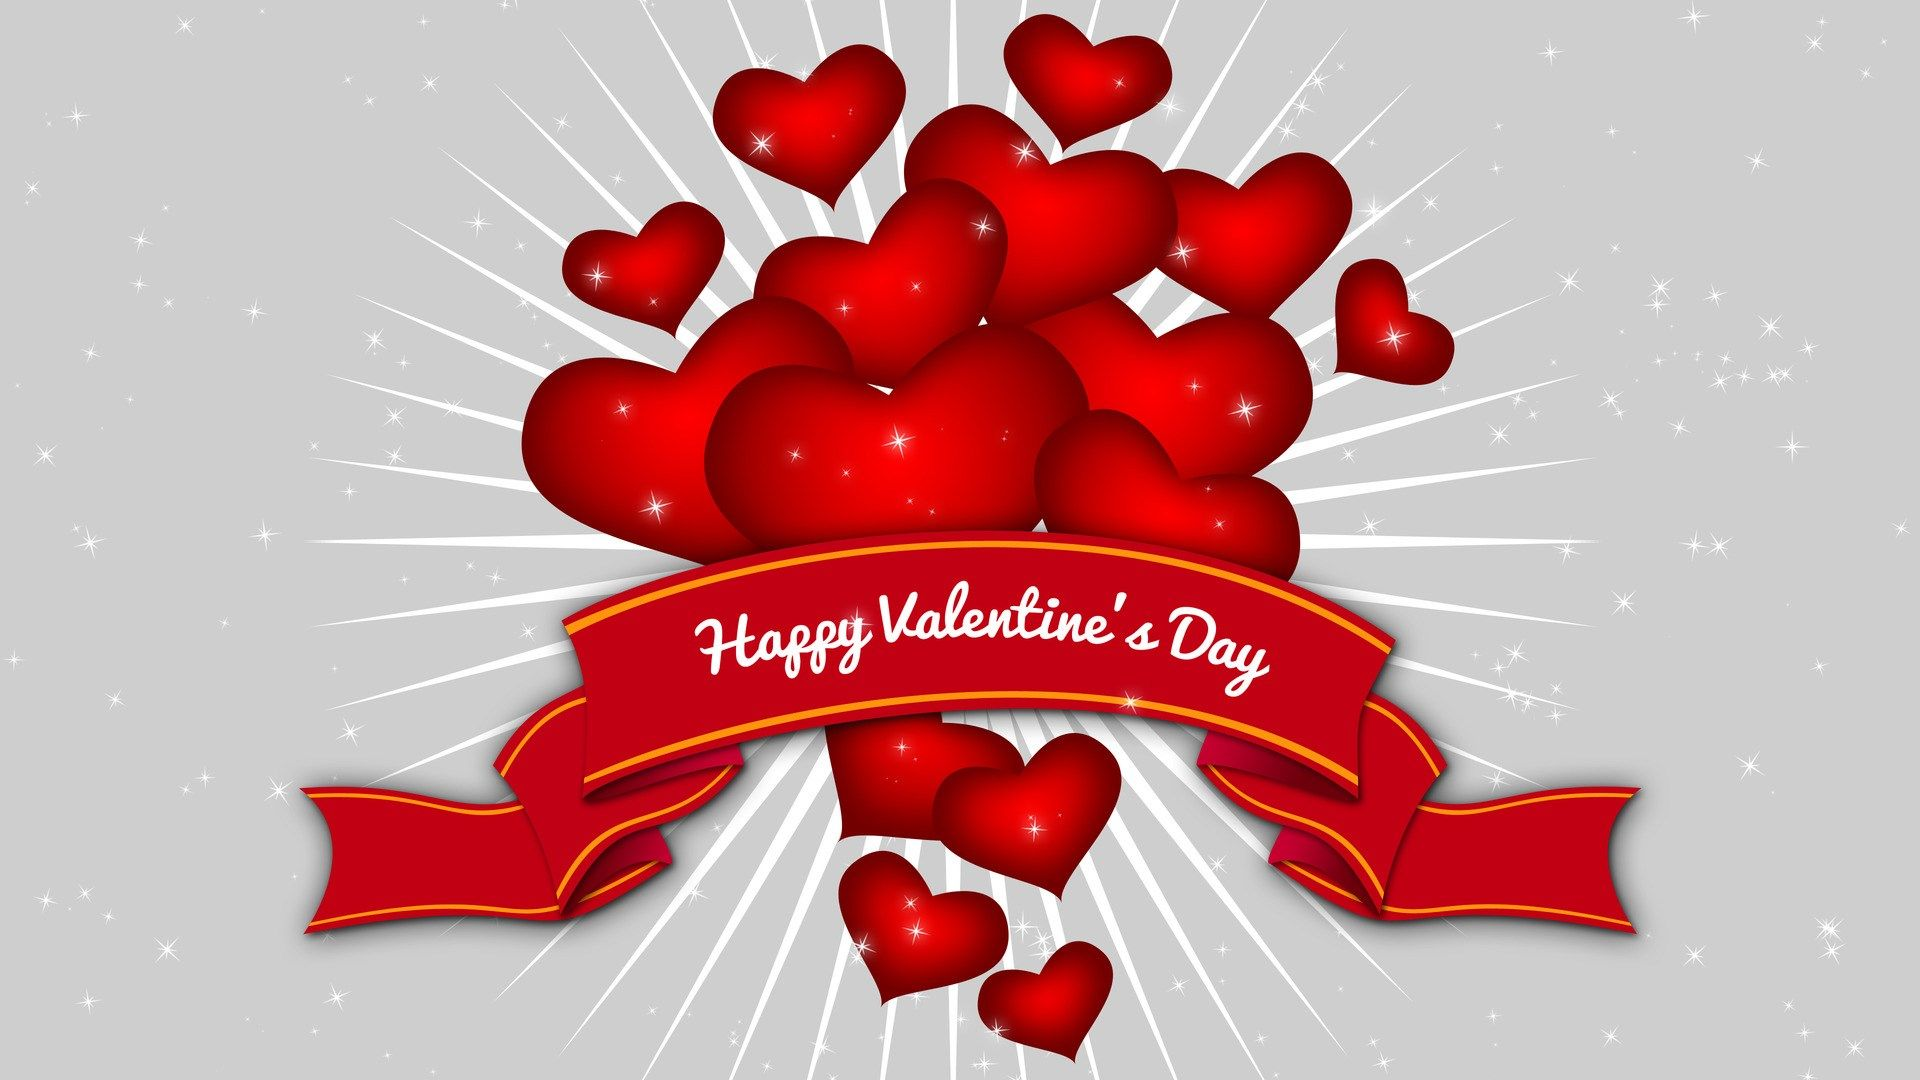 Wallpapers for Desktop valentines day picture Jayshon Robin